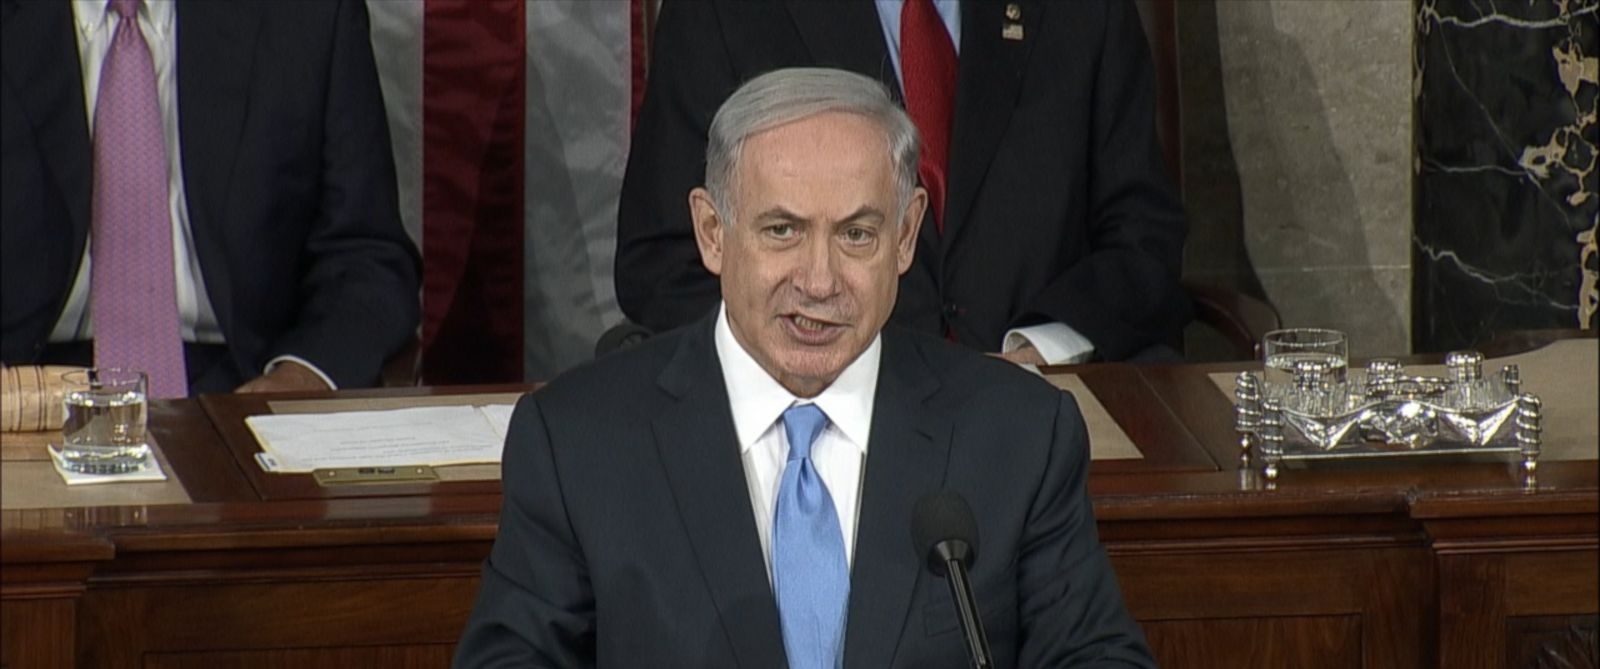 PHOTO: Israeli Prime Minister Benjamin Netanyahu addresses the United States Congress, Washington, March 3, 2015.